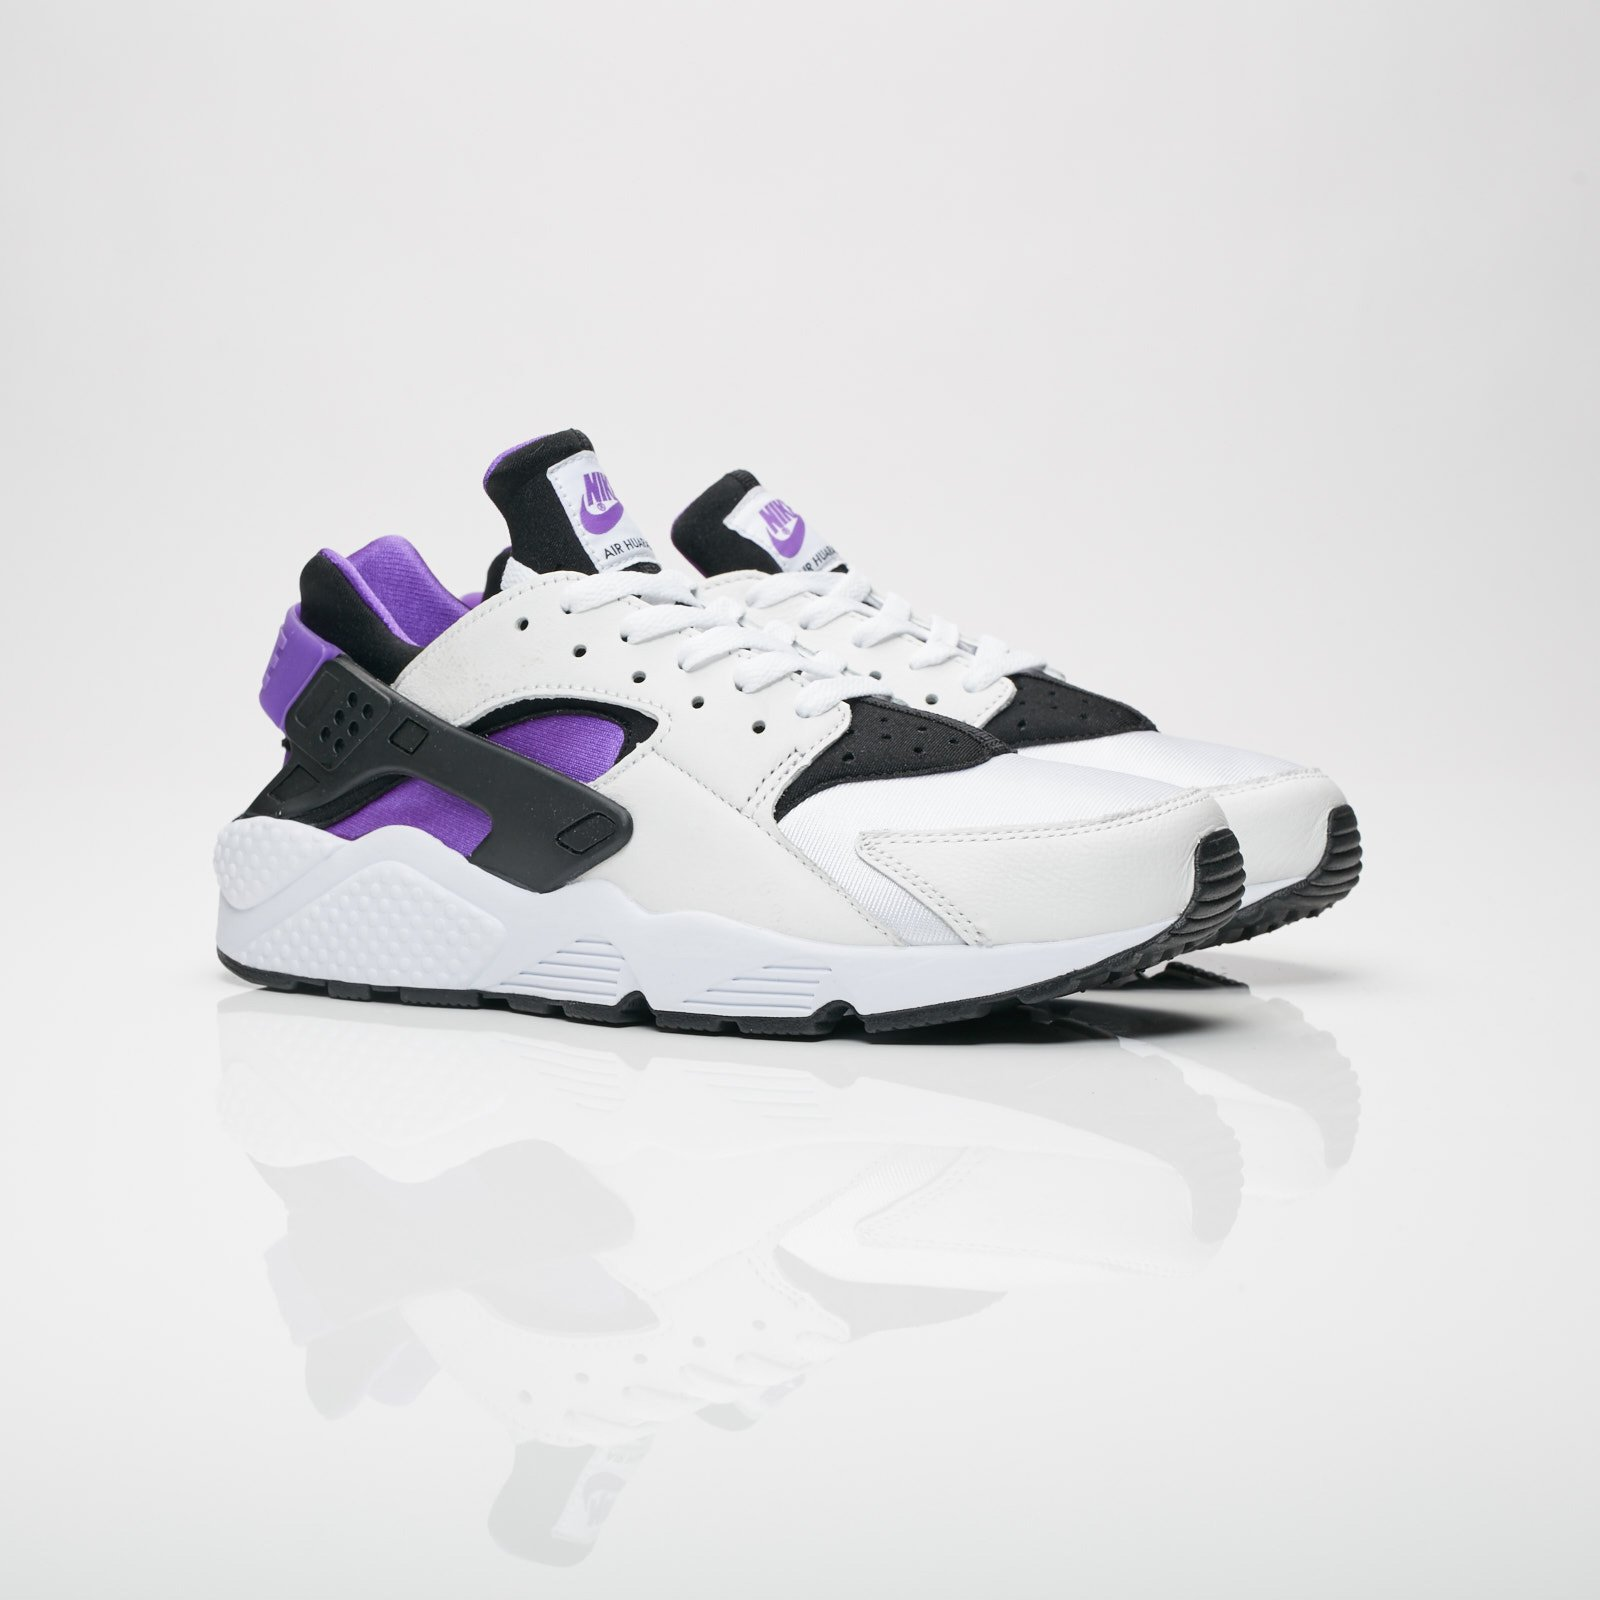 15577eaf0f85fa Nike Air Huarache Run 91 Qs - Ah8049-001 - Sneakersnstuff